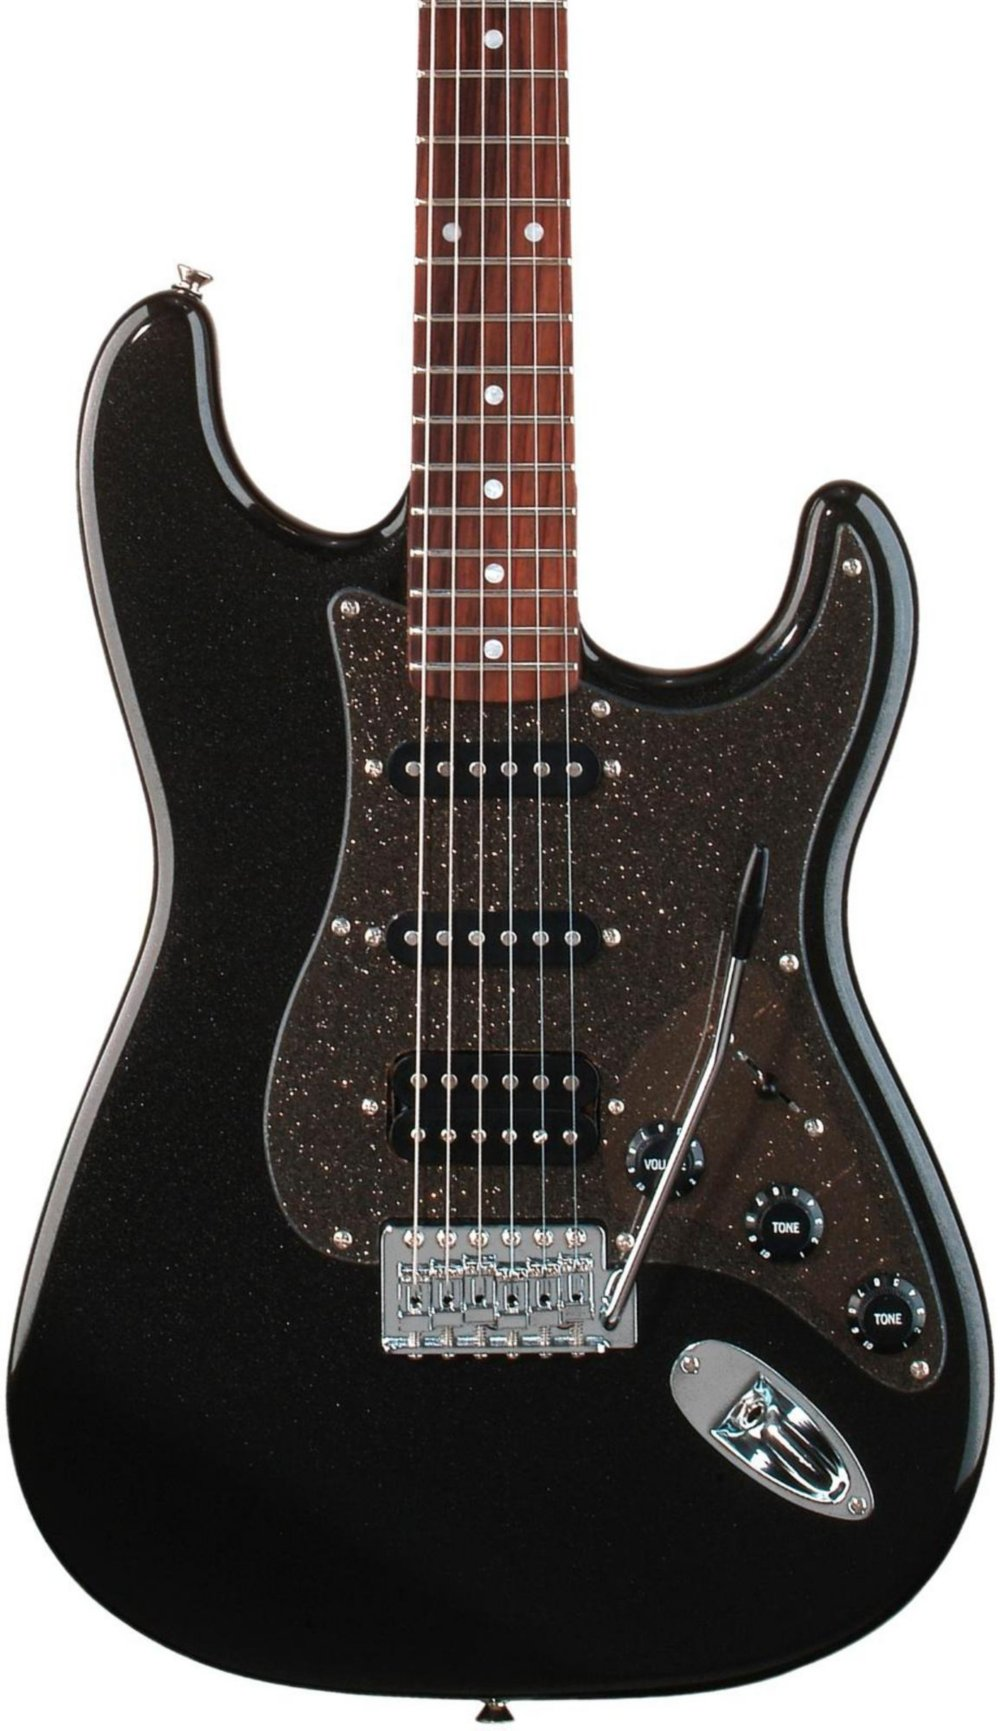 Cheap Squier Affinity Series Stratocaster HSS Electric Guitar Montego Black Metallic Black Friday & Cyber Monday 2019